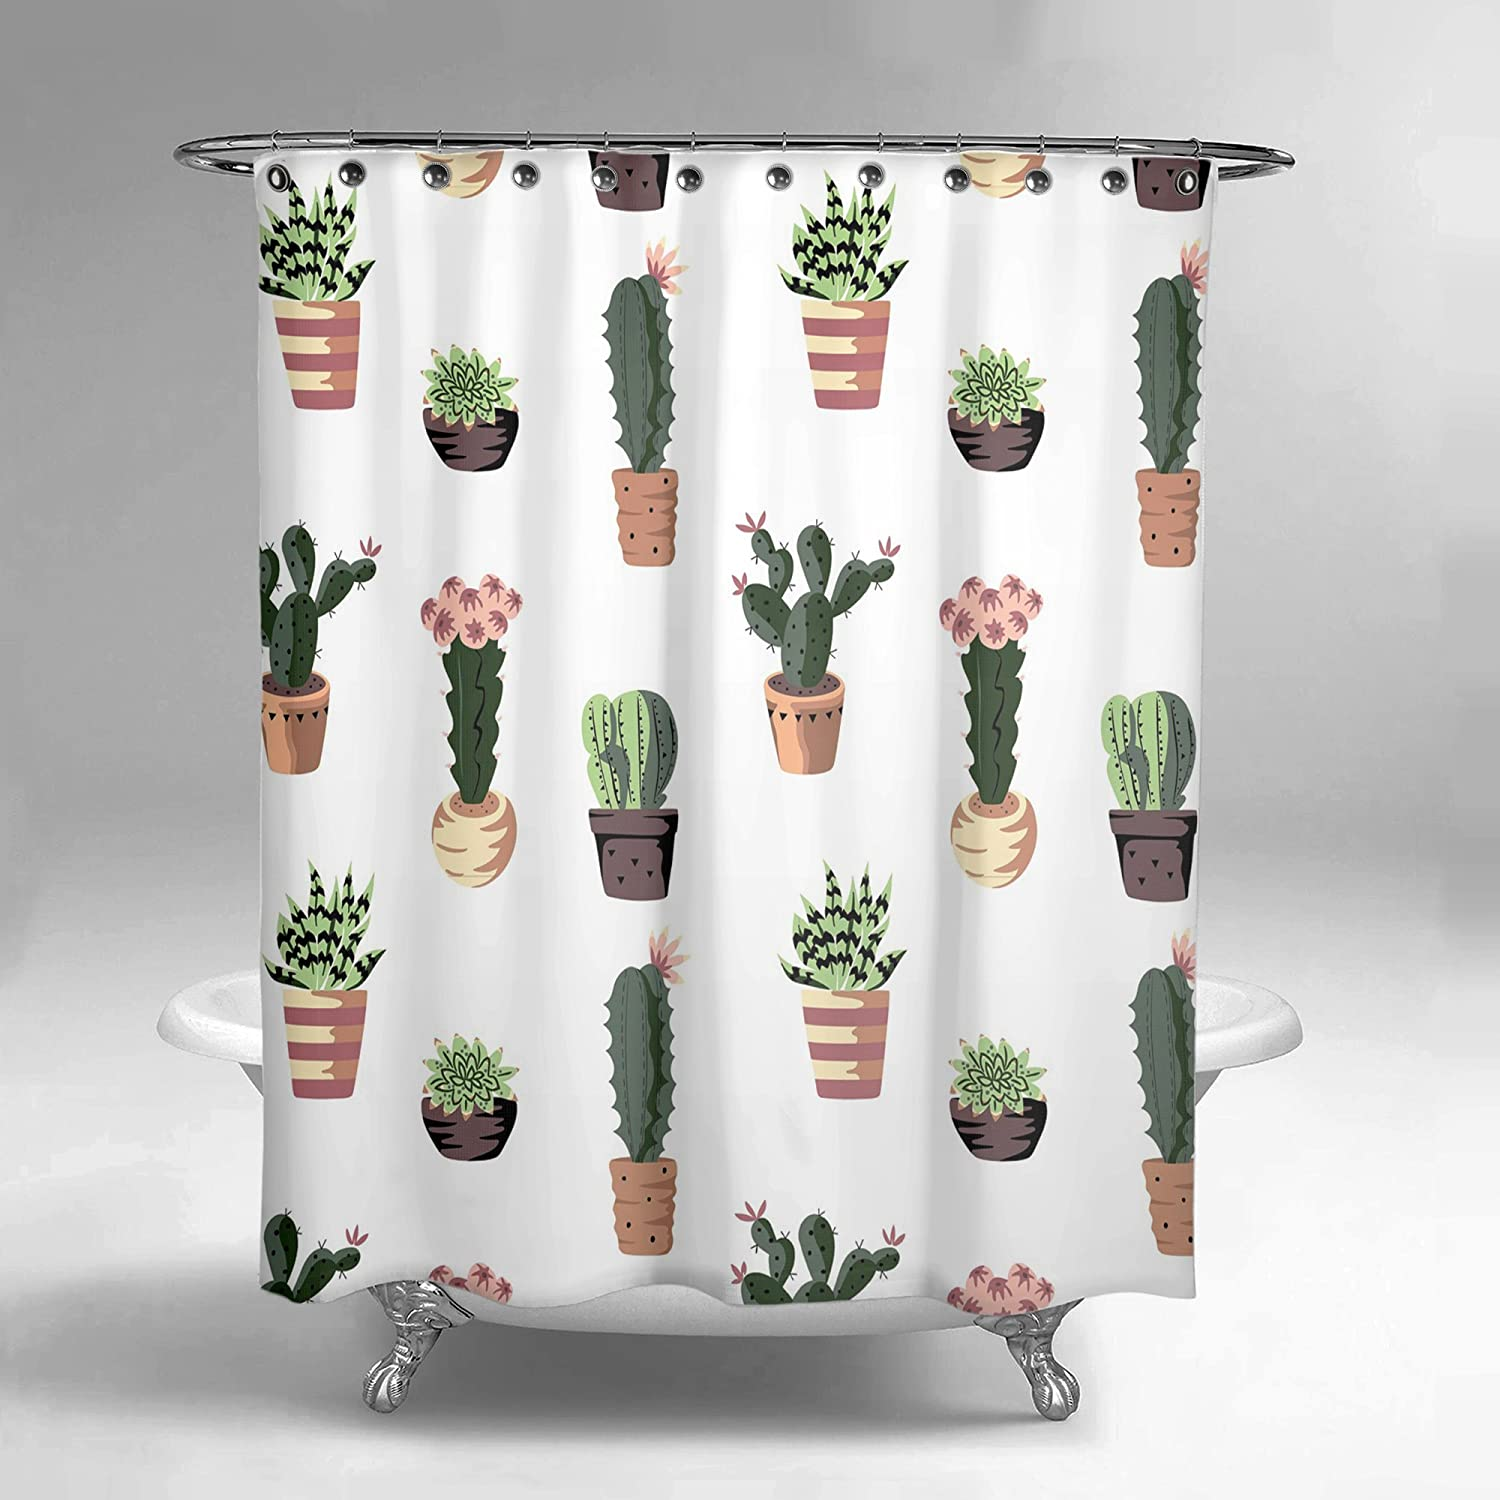 Lume.ly - Succulent Cactus Polyester Fabric Shower Curtain Set for Bathroom W/12 PREMIUM STAINLESS STEEL Hooks Rings, Unique Luxurious Designer Bright Art Decor Home (White Green) (72x72 in)